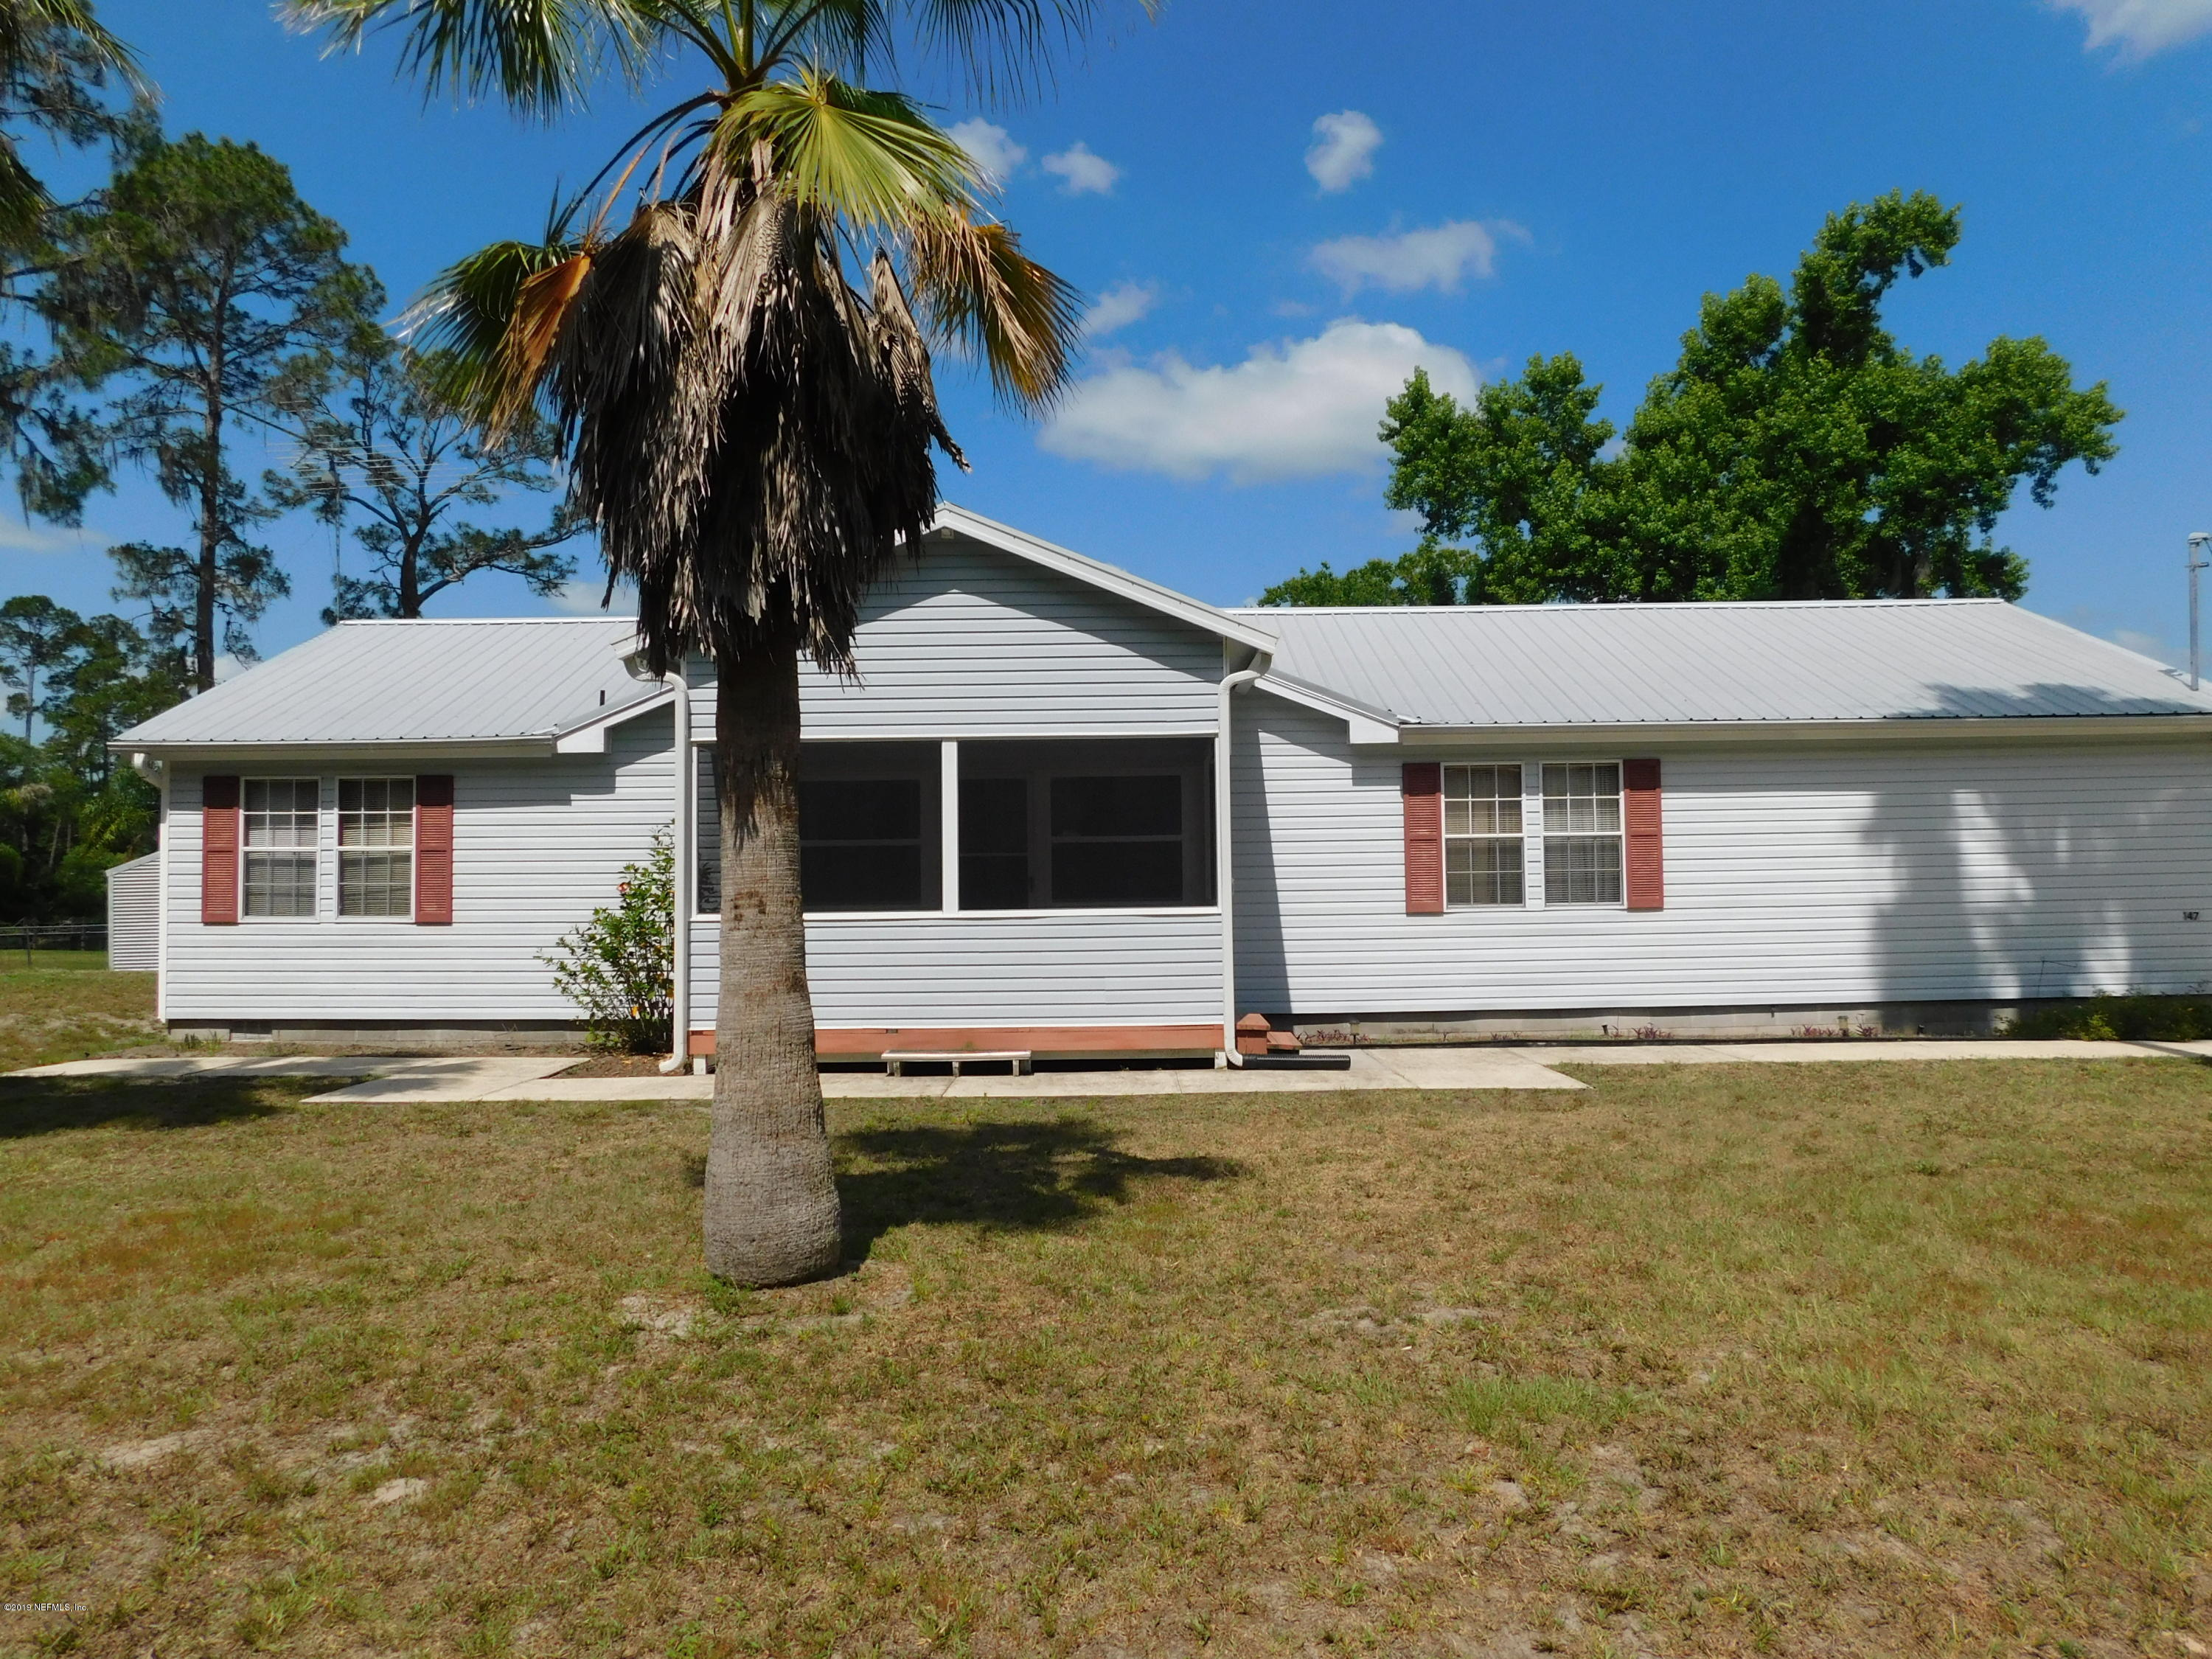 147 SANDY, INTERLACHEN, FLORIDA 32148, 3 Bedrooms Bedrooms, ,2 BathroomsBathrooms,Residential - single family,For sale,SANDY,994799